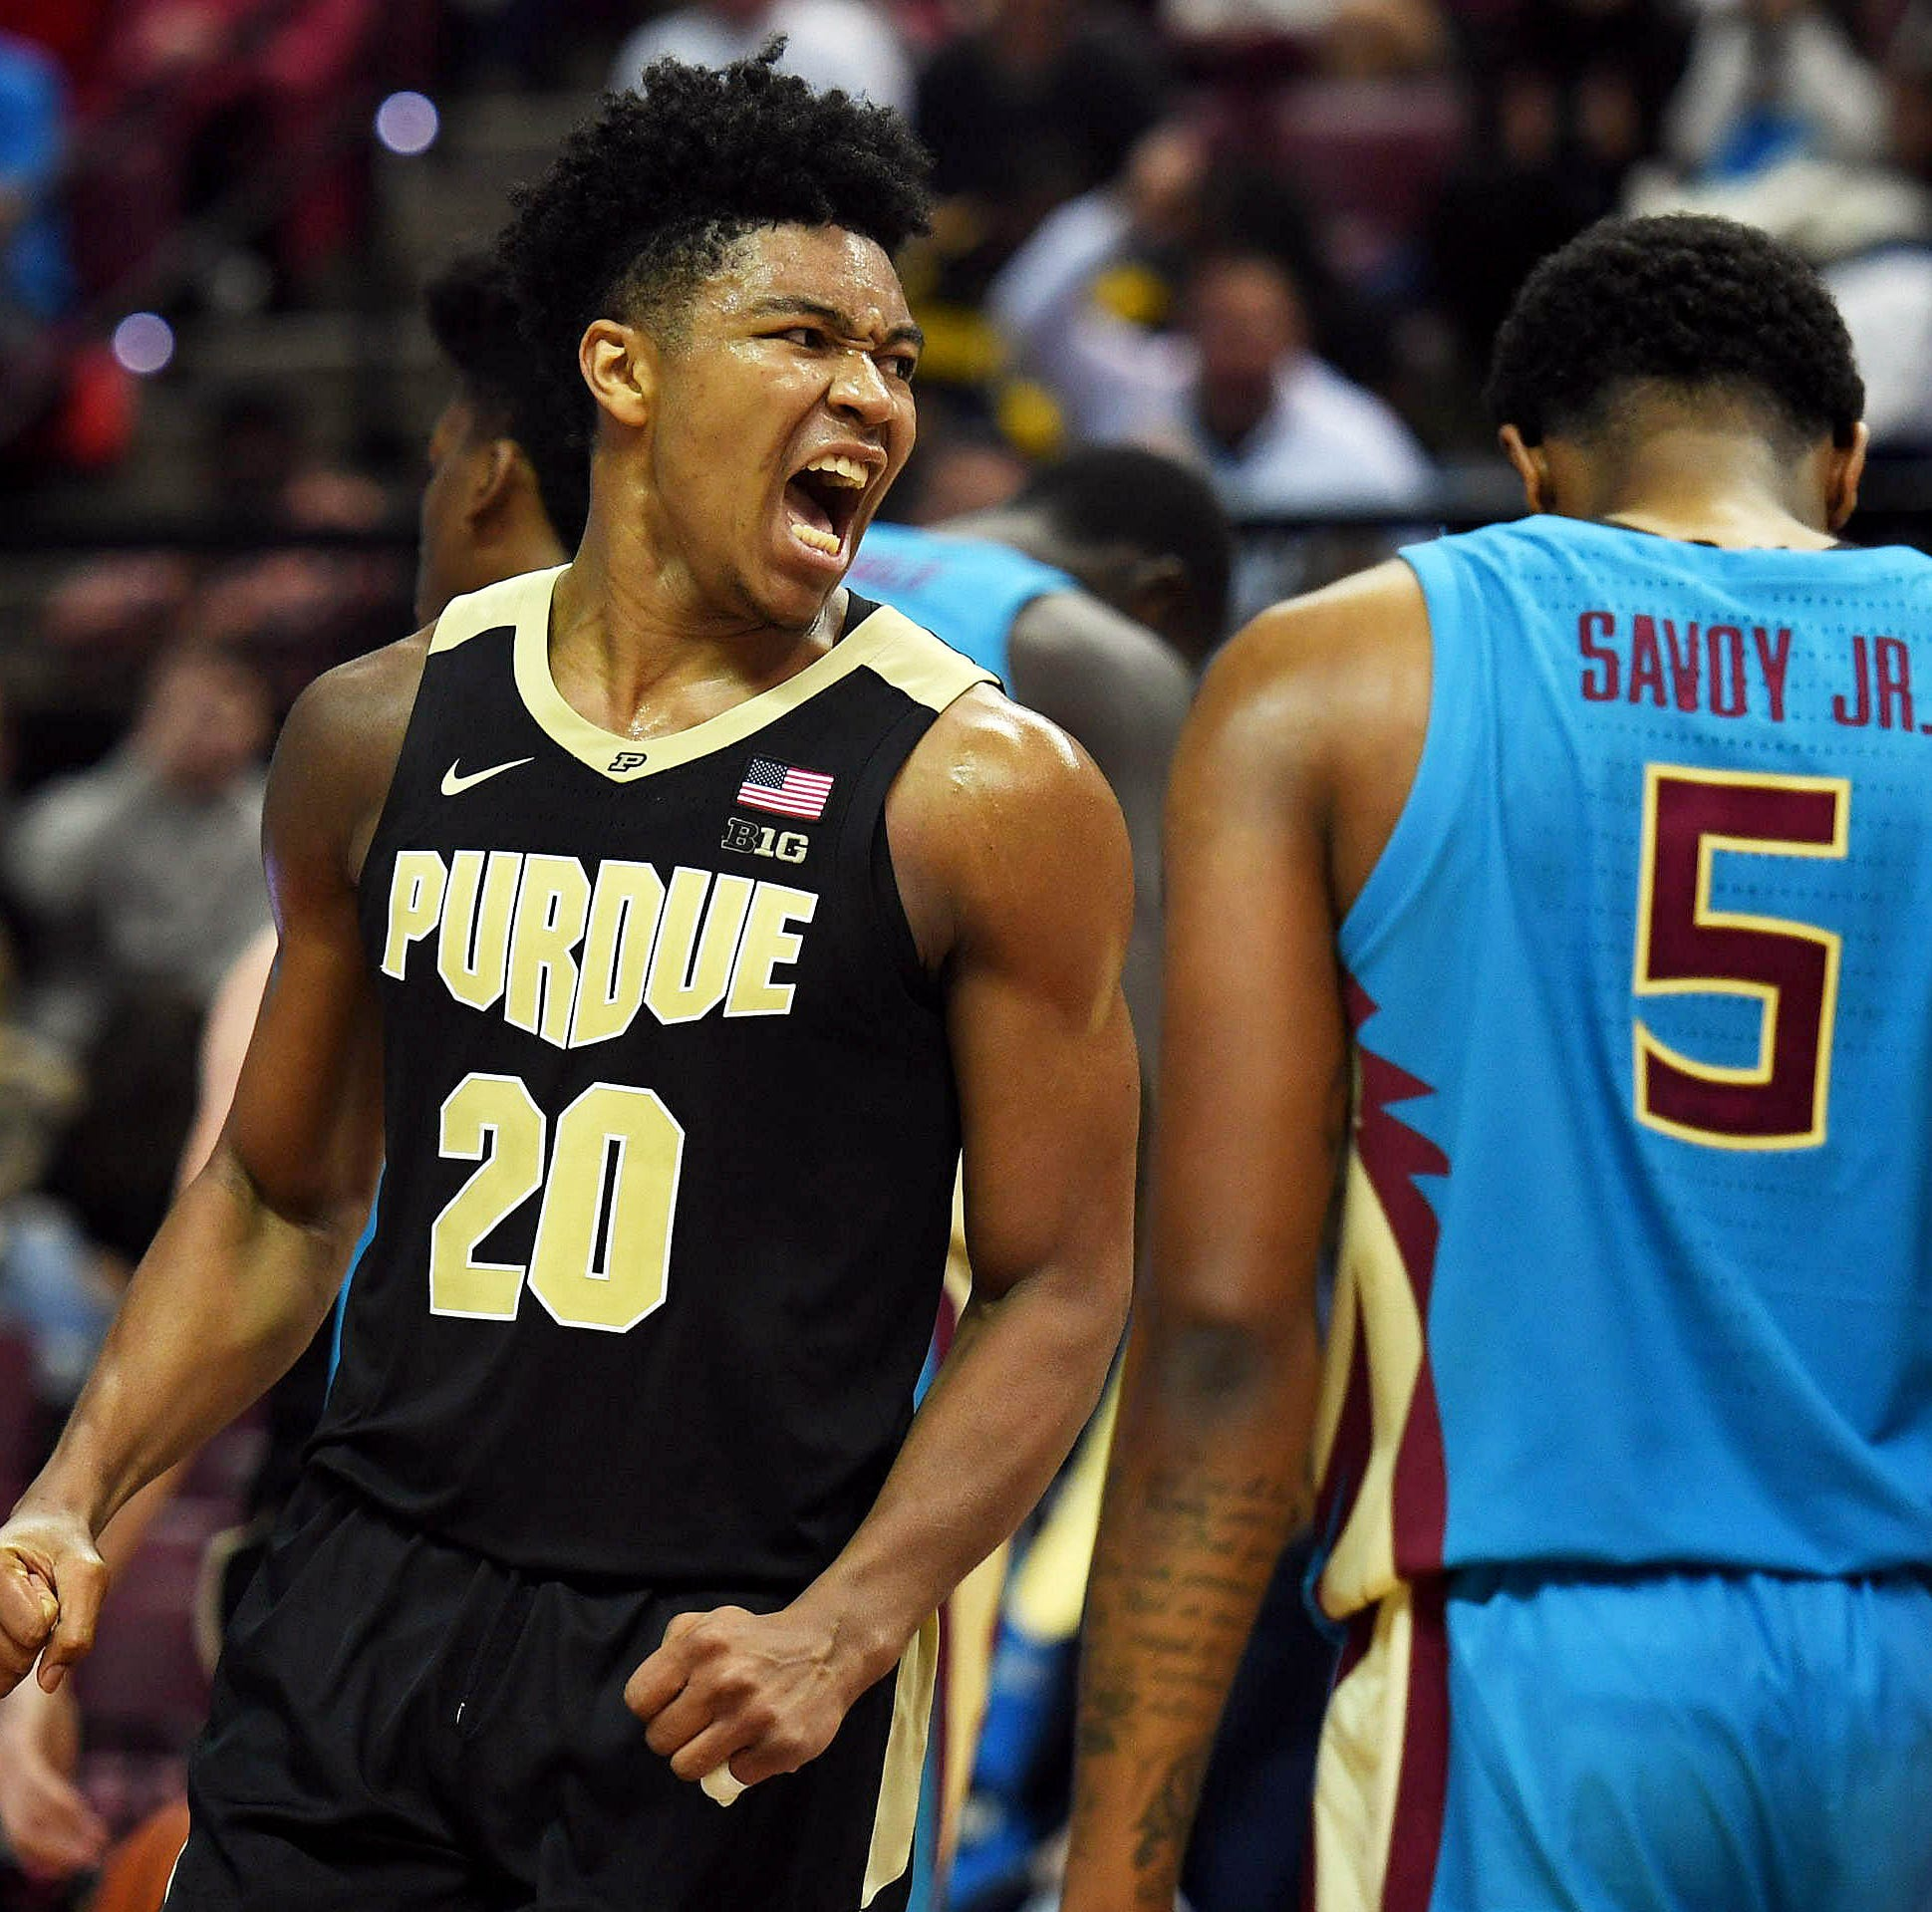 Purdue basketball's 2019-20 schedule could again help form team's long-term identity